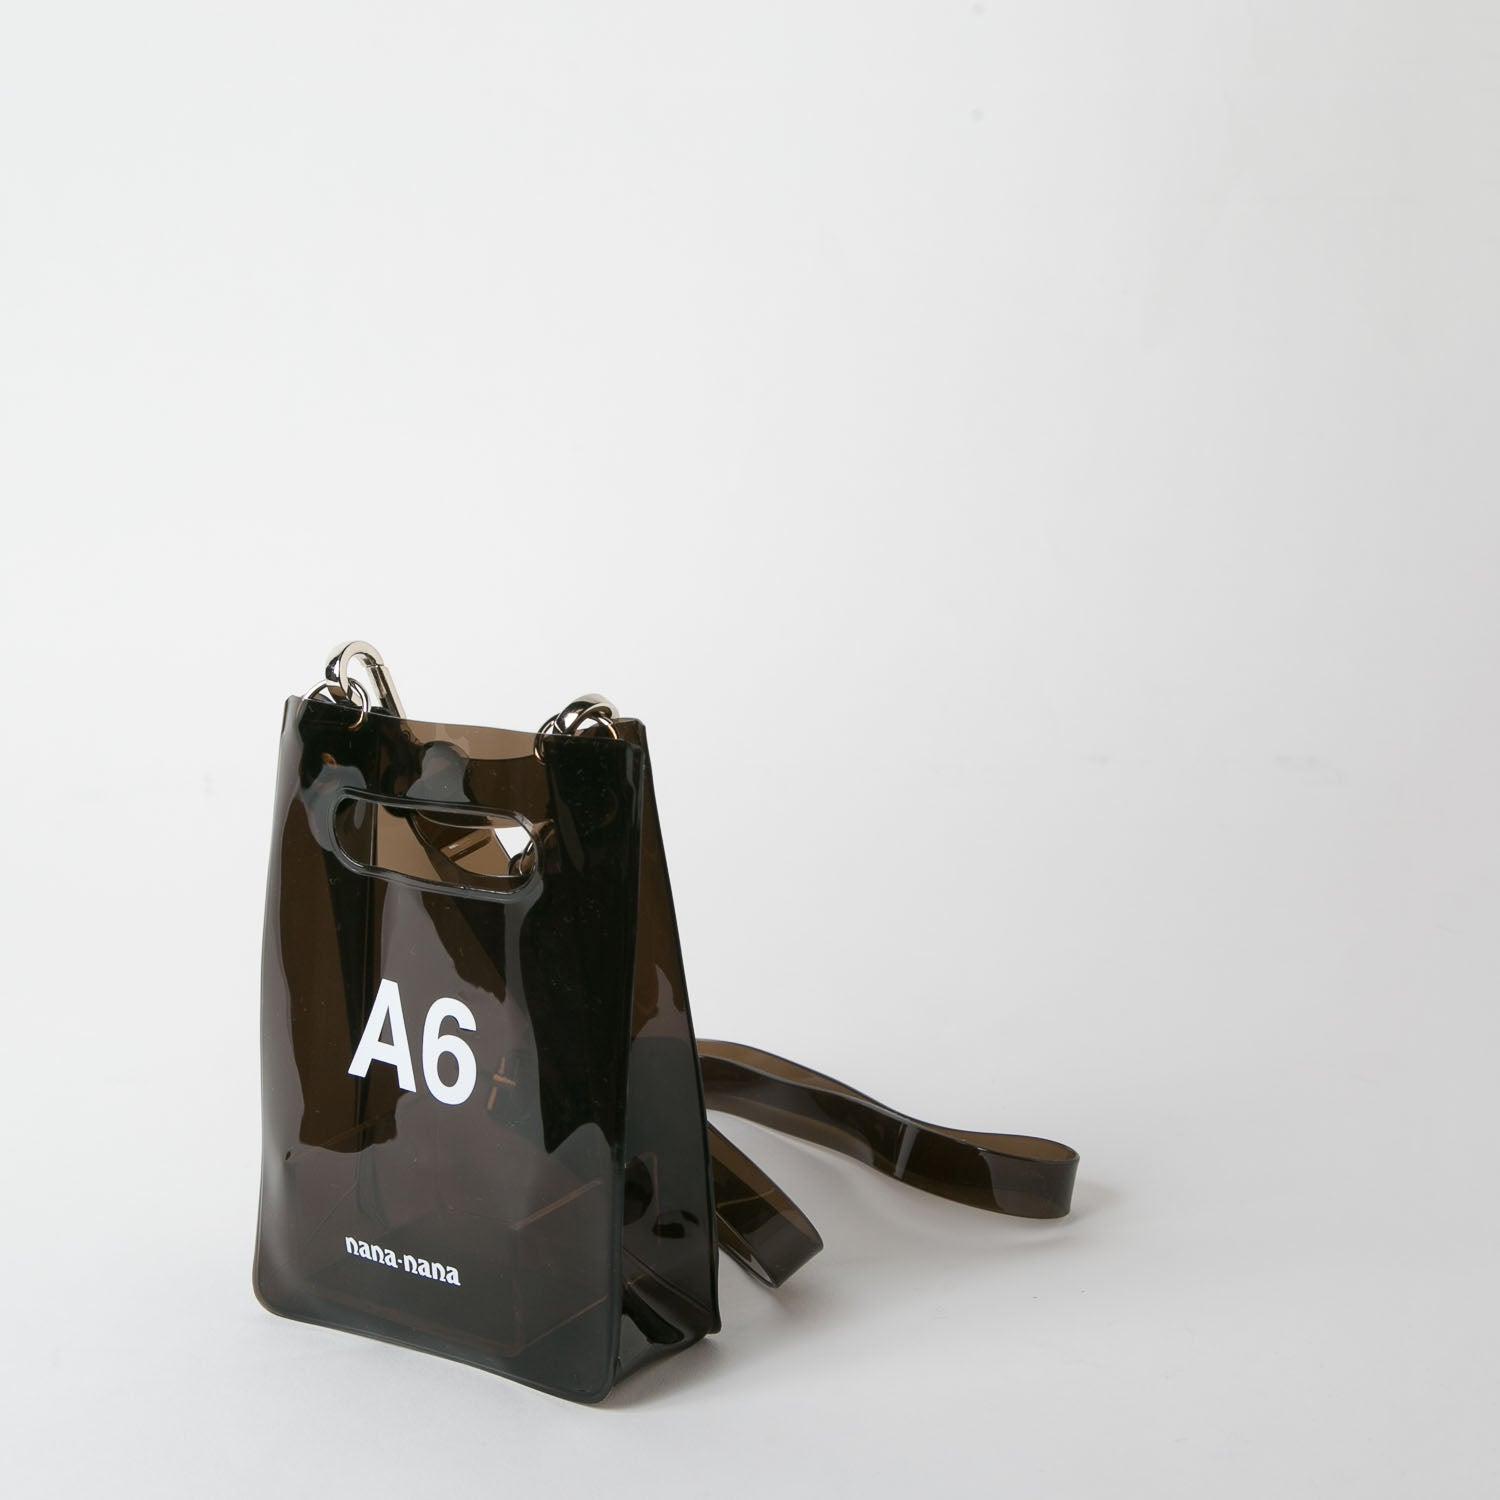 black pvc bag at Secret Location by nana-nana